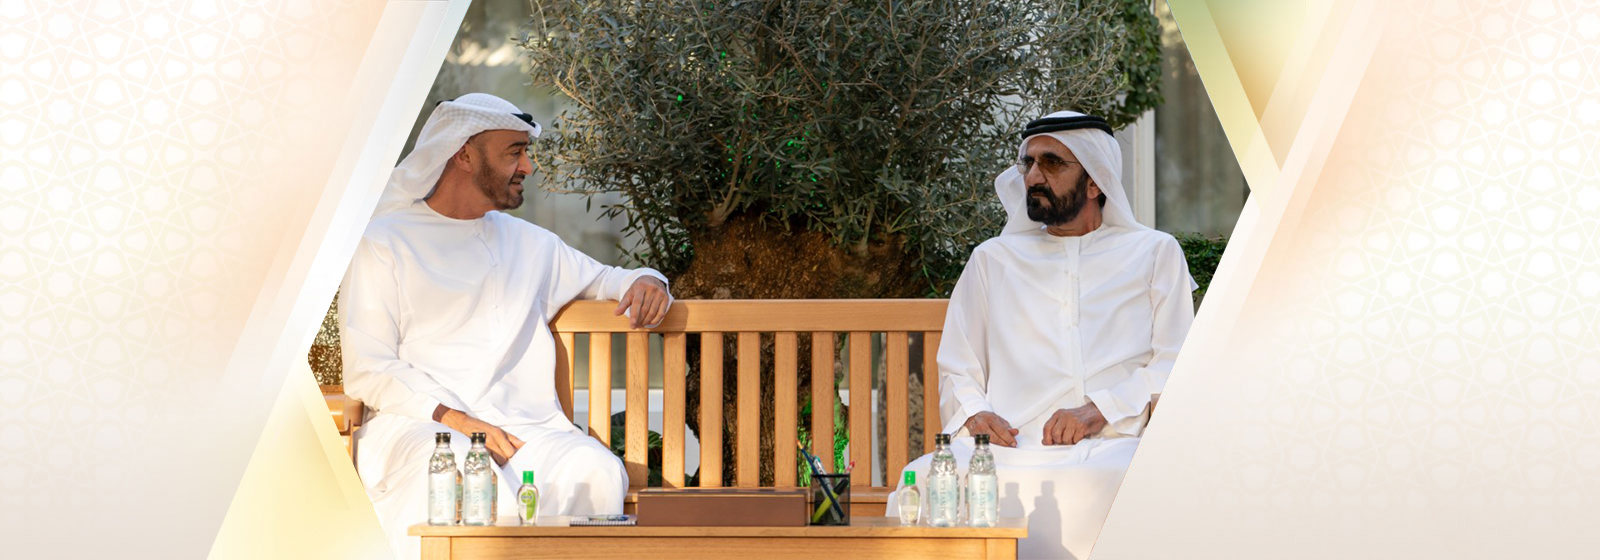 Mohammed bin Rashid, Mohamed bin Zayed discuss national issues